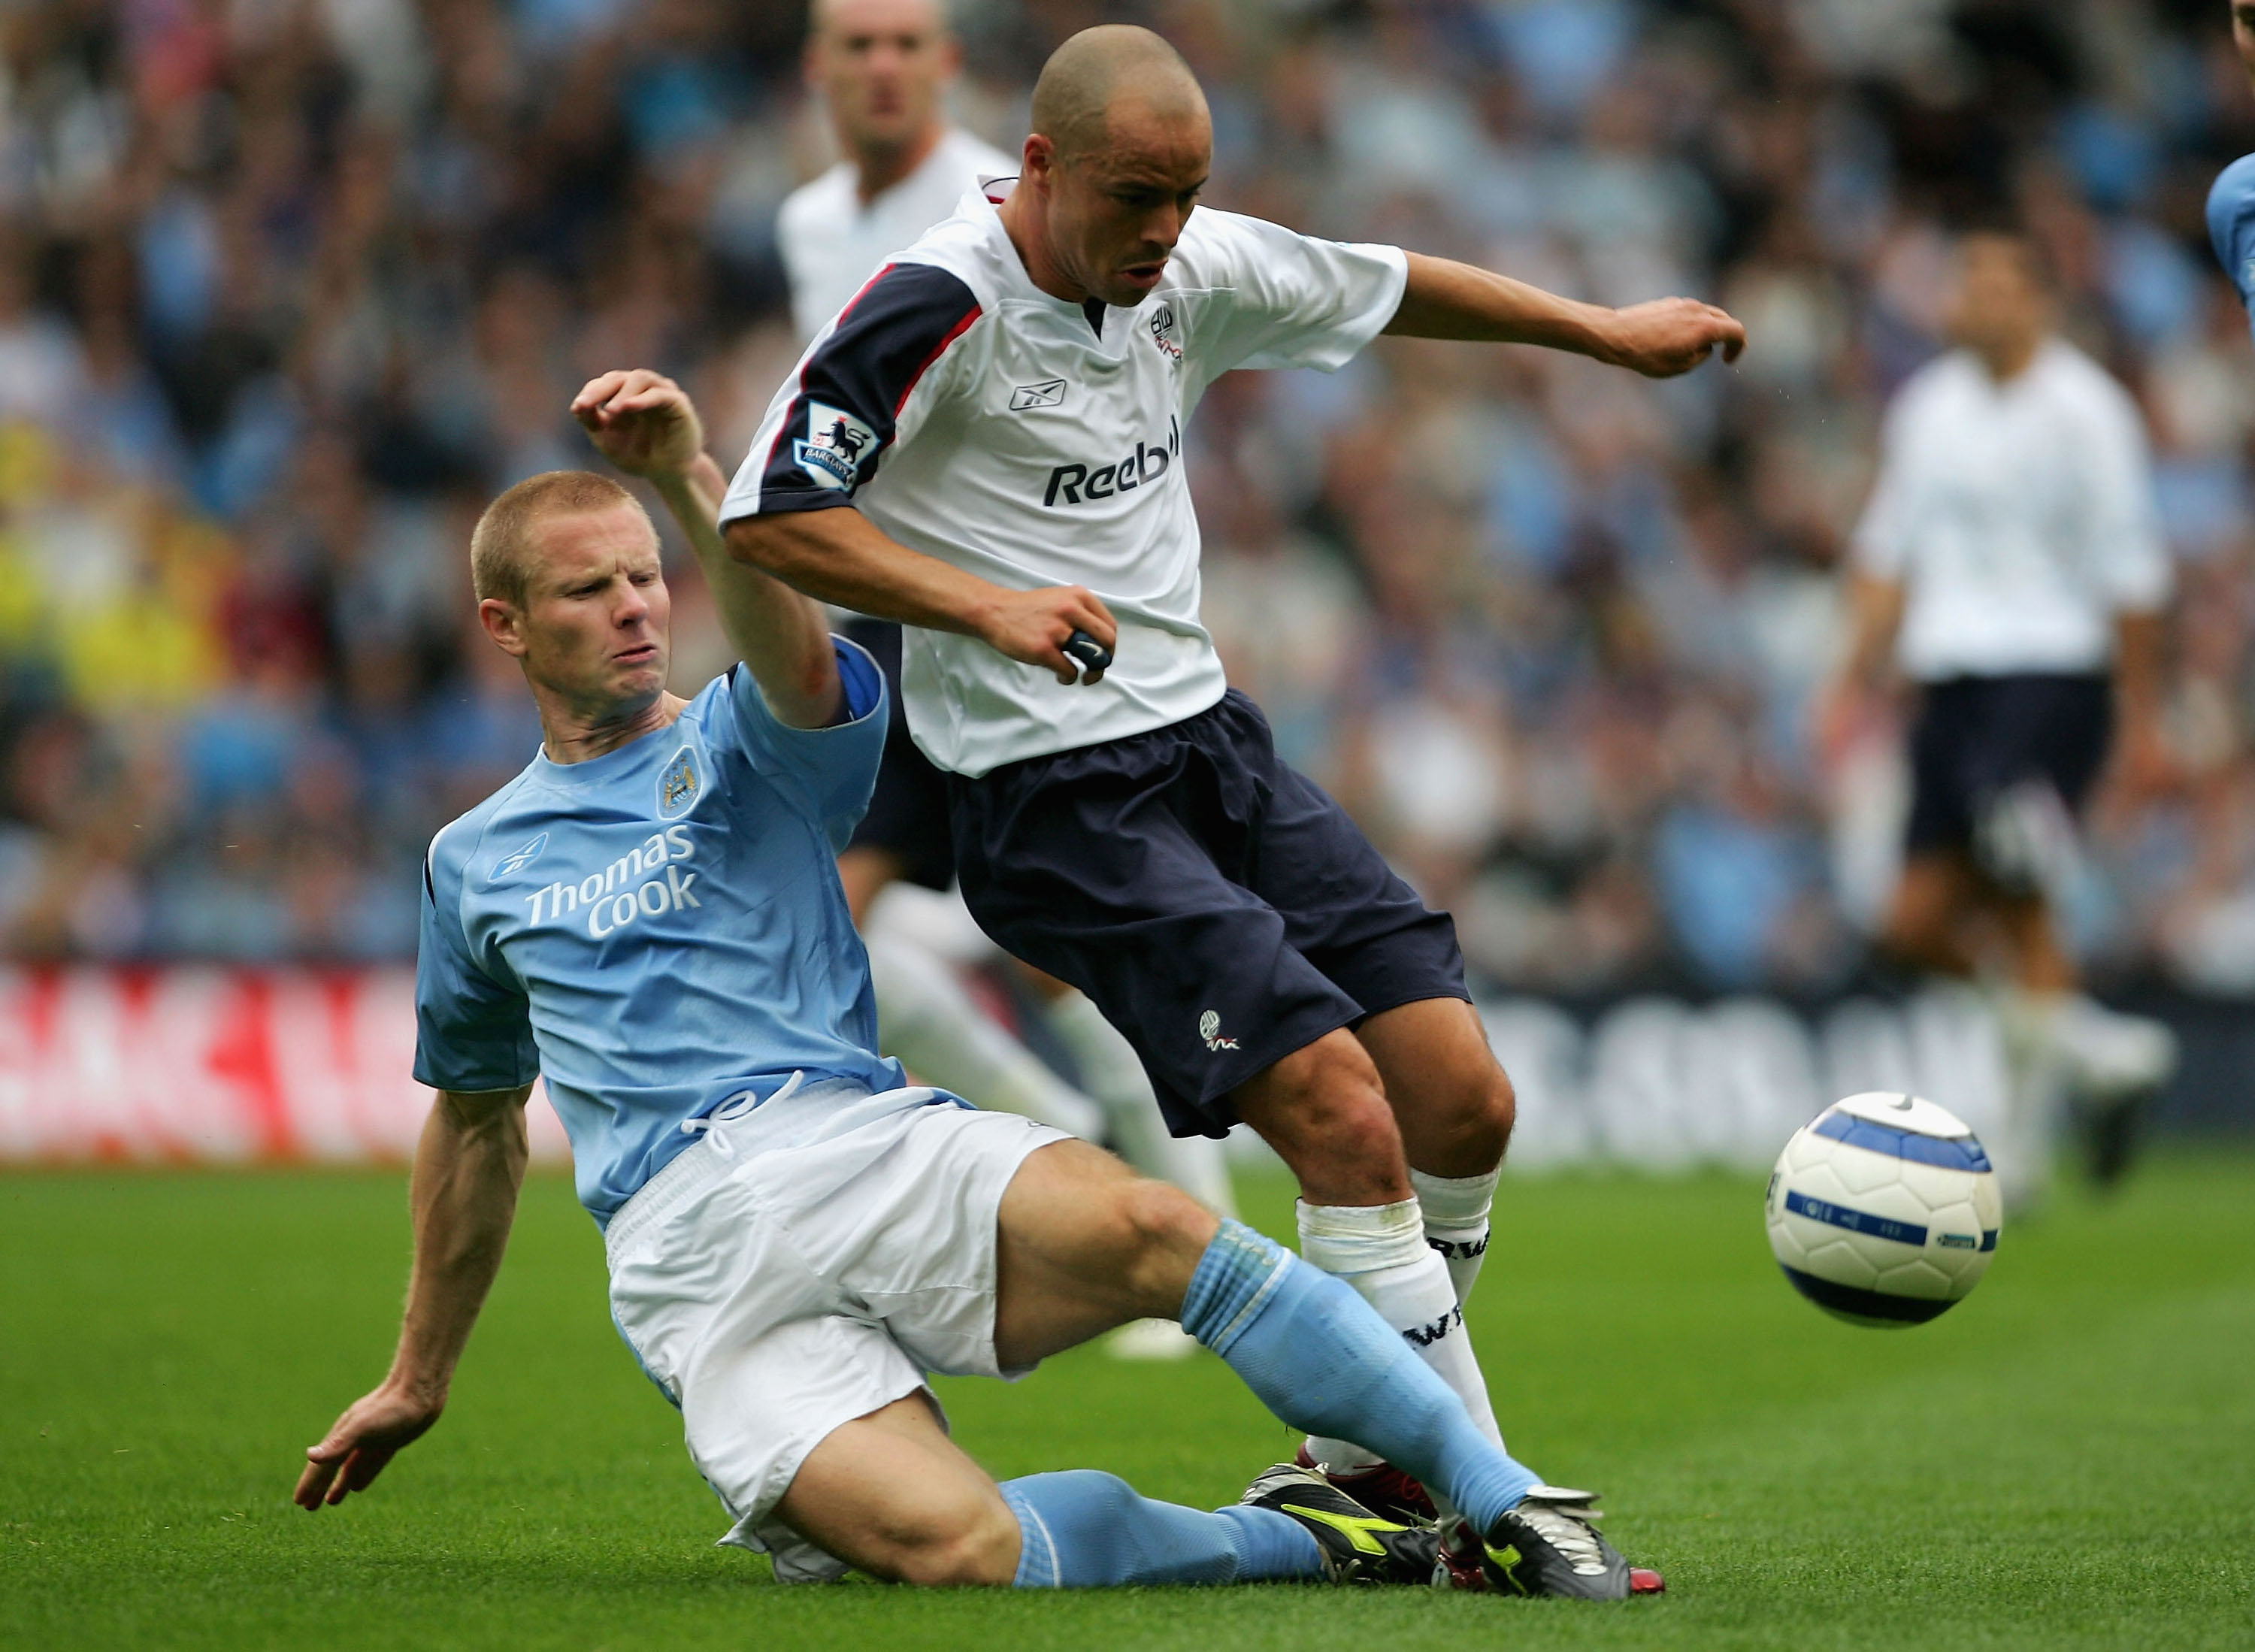 MANCHESTER, ENGLAND - SEPTEMBER 18:  Ben Thatcher of Manchester City tackles Stelios Giannakopoulos of Bolton Wanderers during the Barclays Premiership match between Manchester City and Bolton Wanderers at the City of Manchester Stadium on September 18, 2